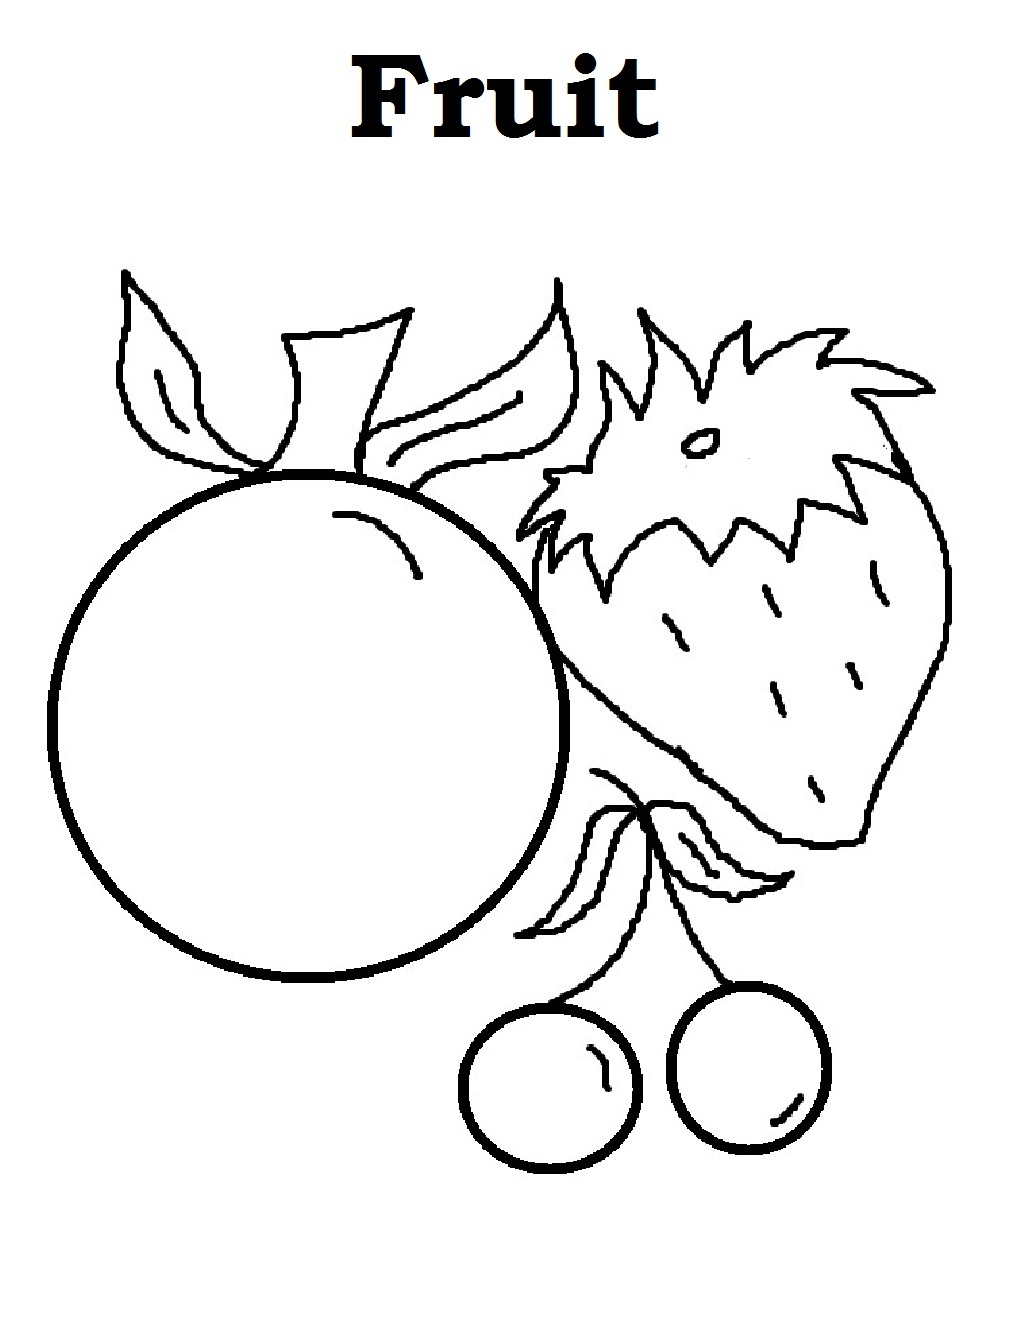 Free Printable Fruit Coloring Pages